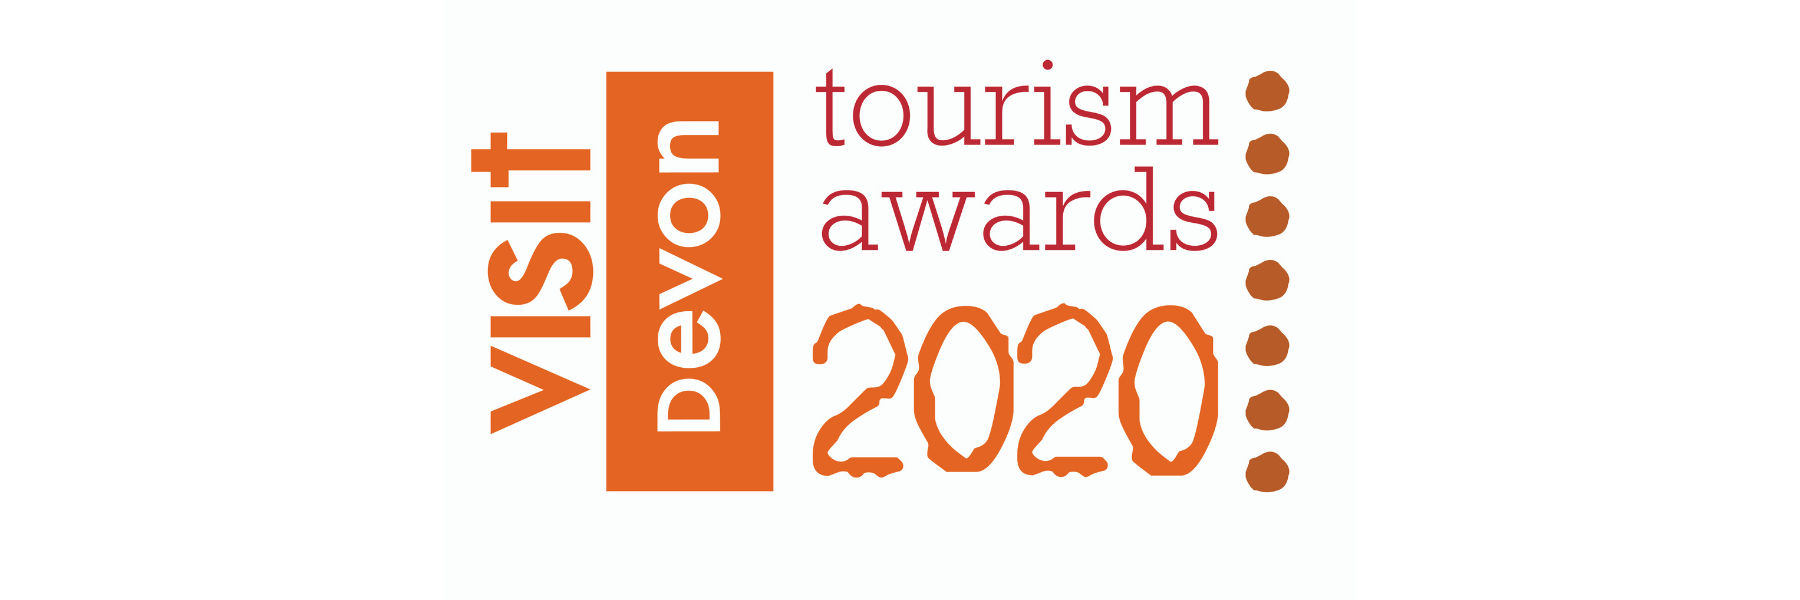 Review from the Devon Tourism Awards 2020